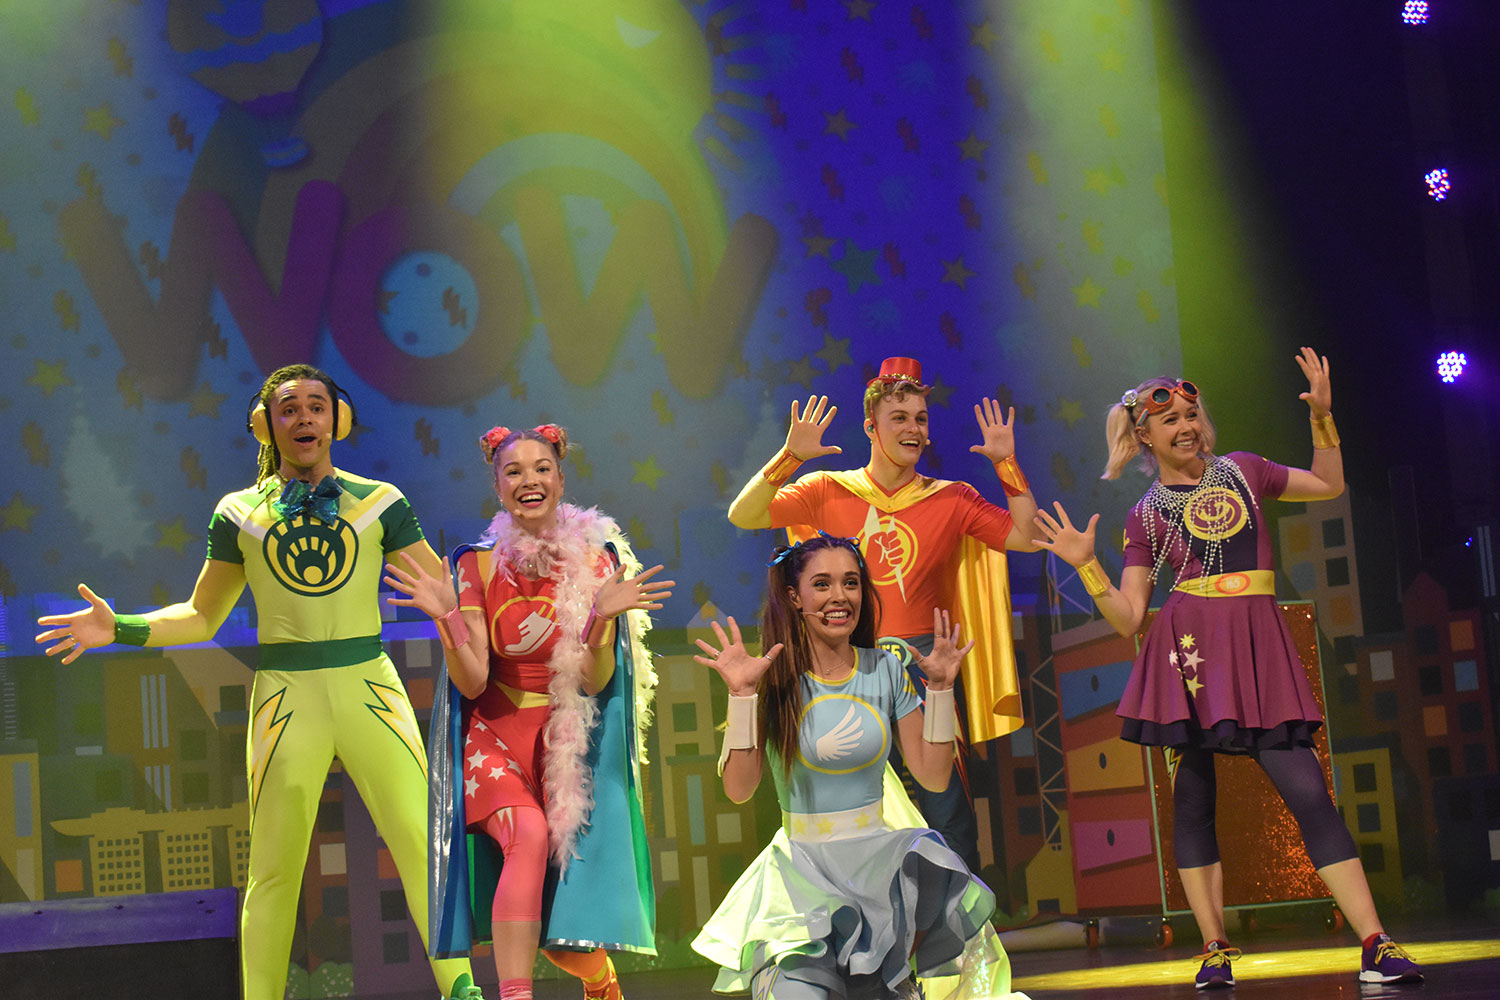 New HI-5 Cast to make Theatrical Debut in Singapore this December